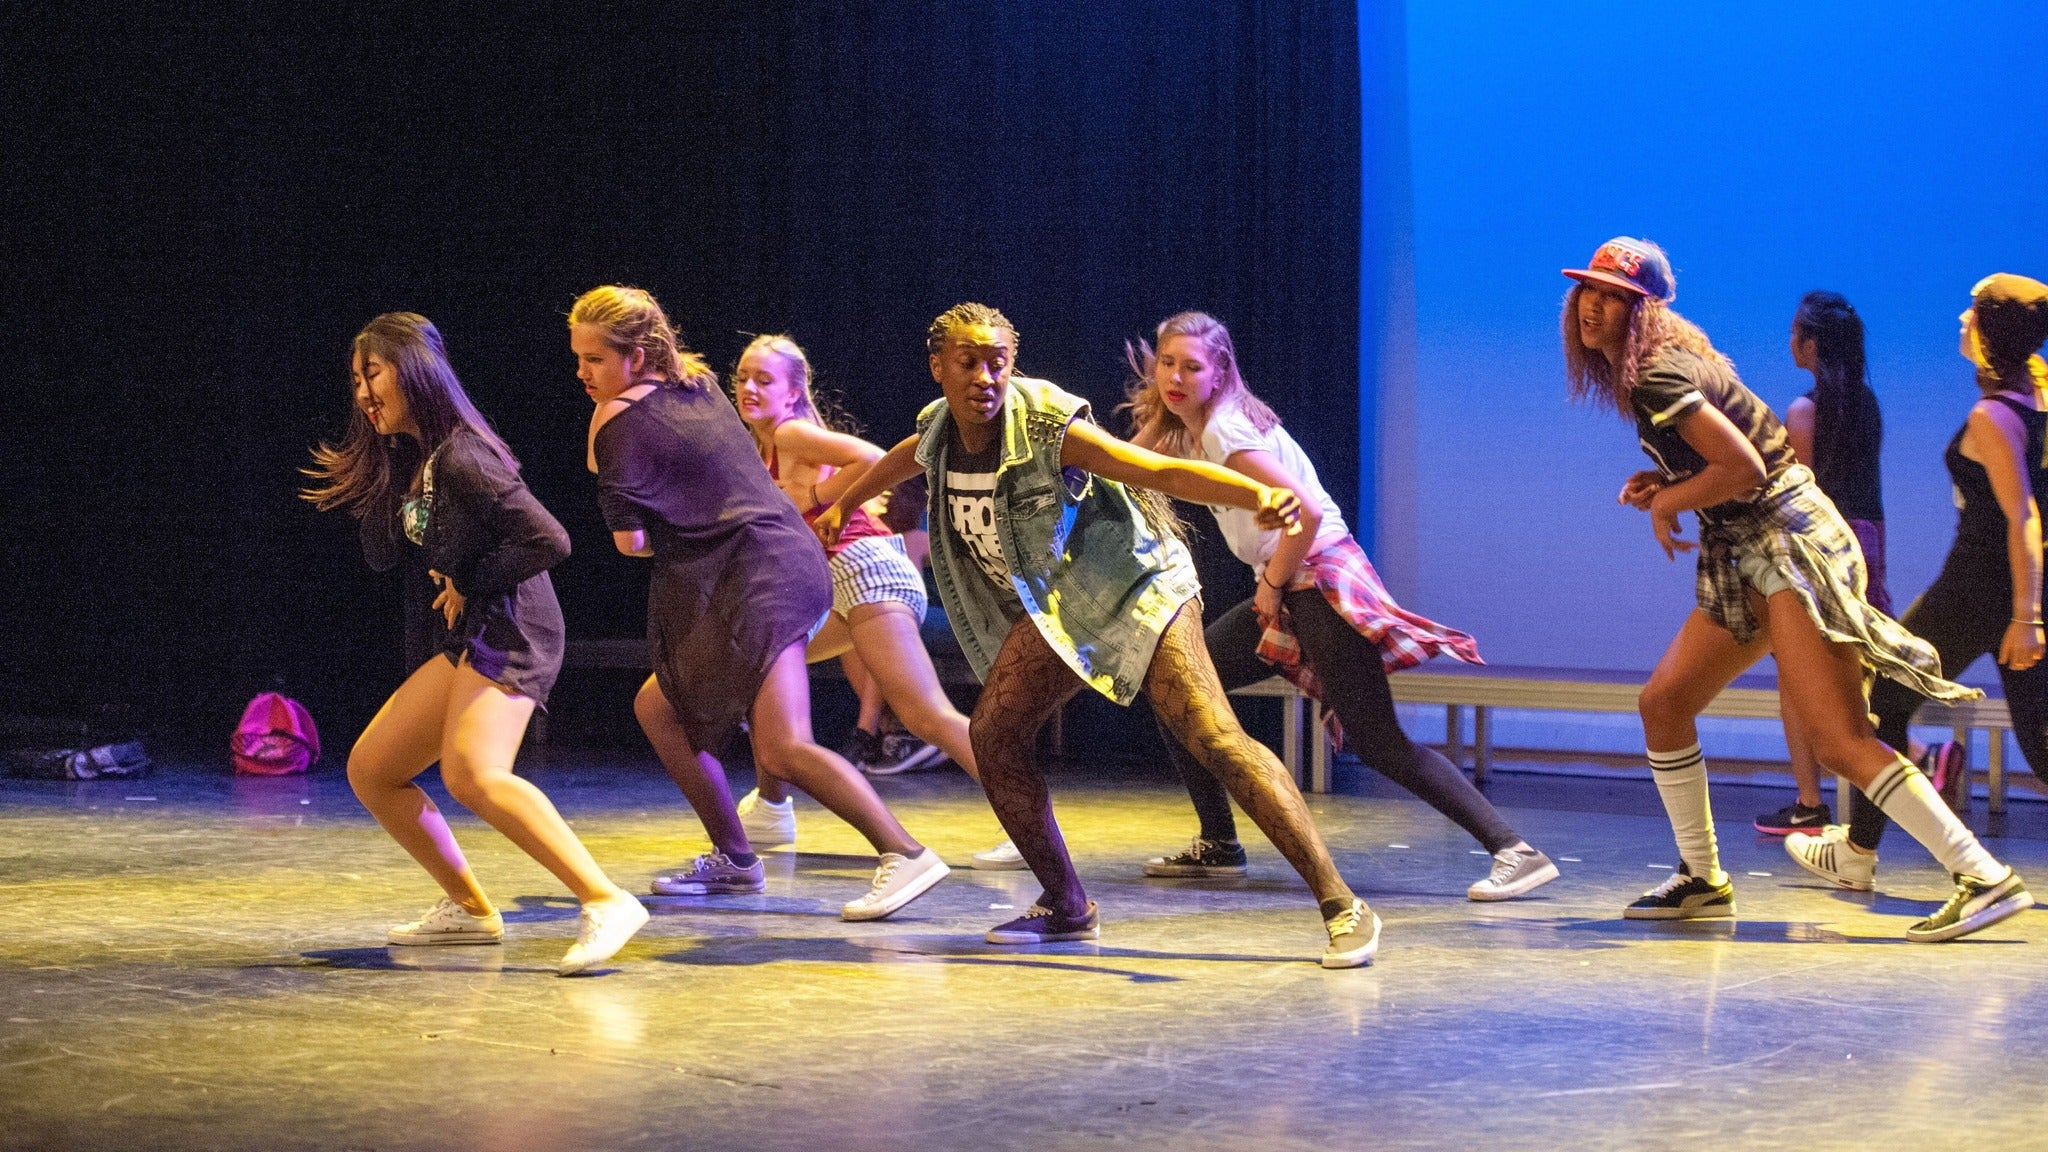 SPRING DANCE WORKS at Falbo Theatre